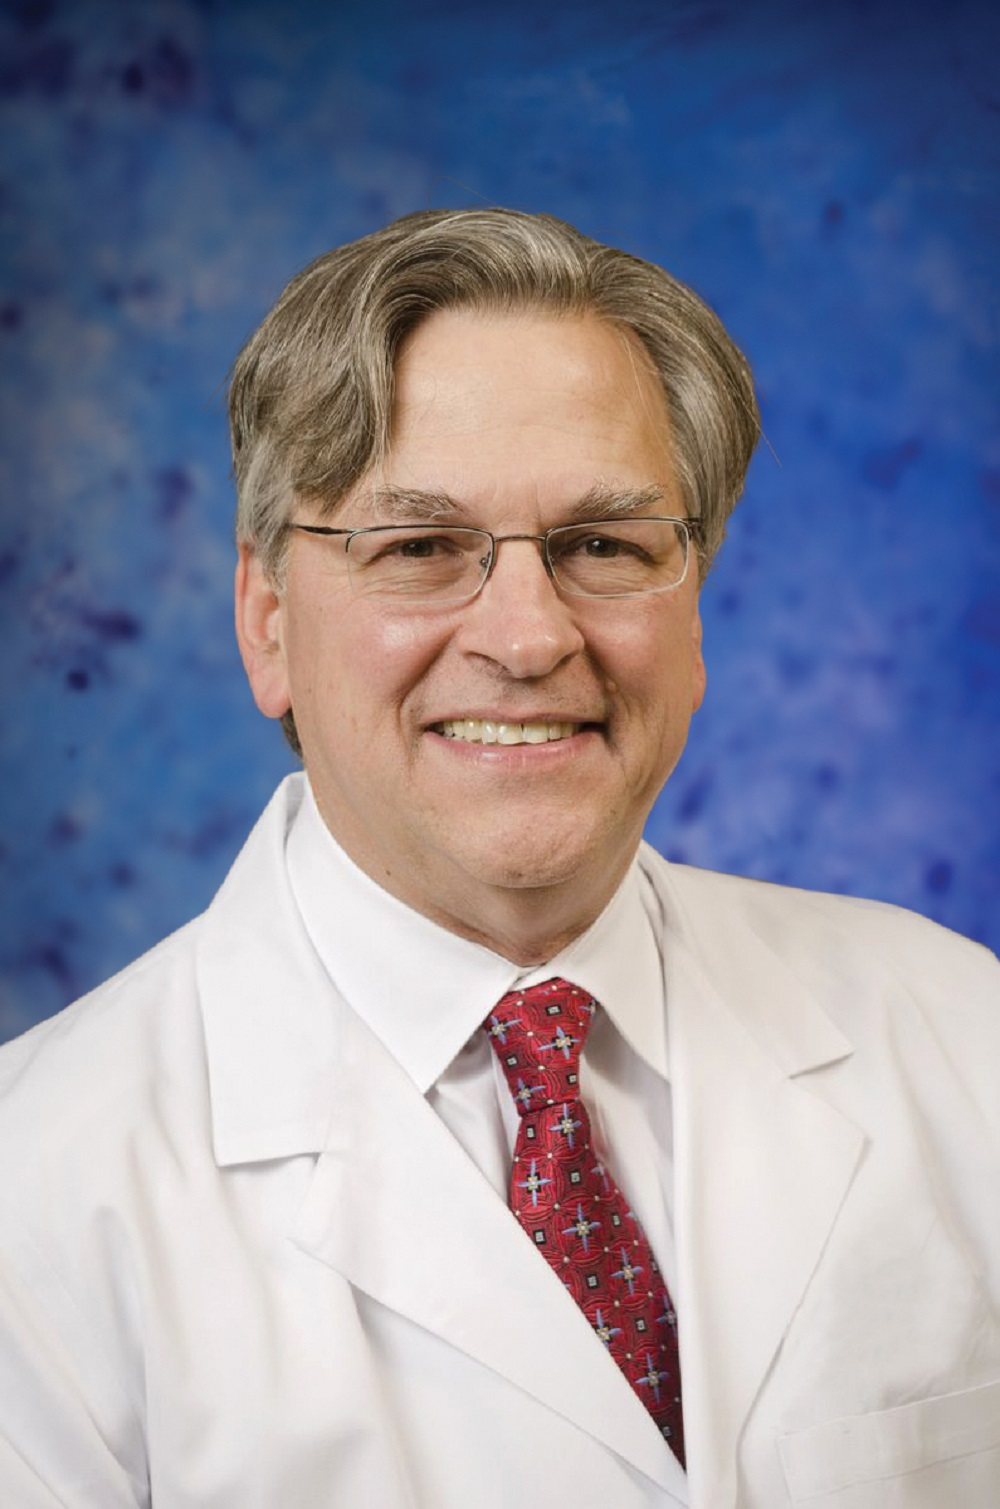 Michael Maggart, MD